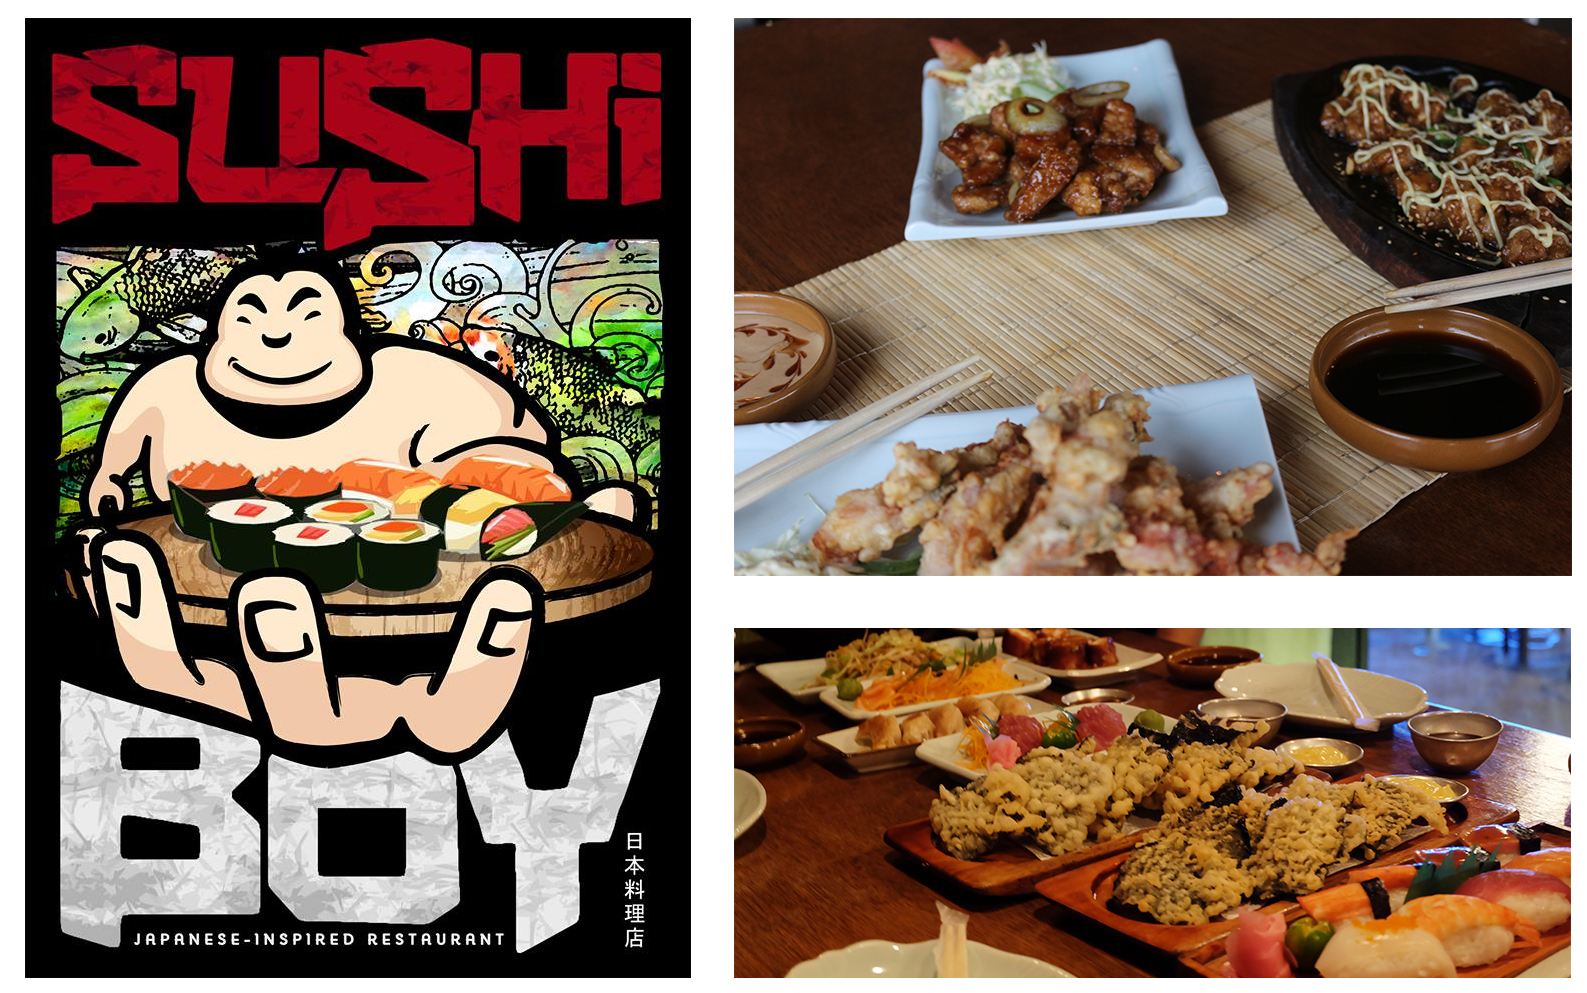 Sushi Boy Introduces New Japanese- Filipino Inspired Items!